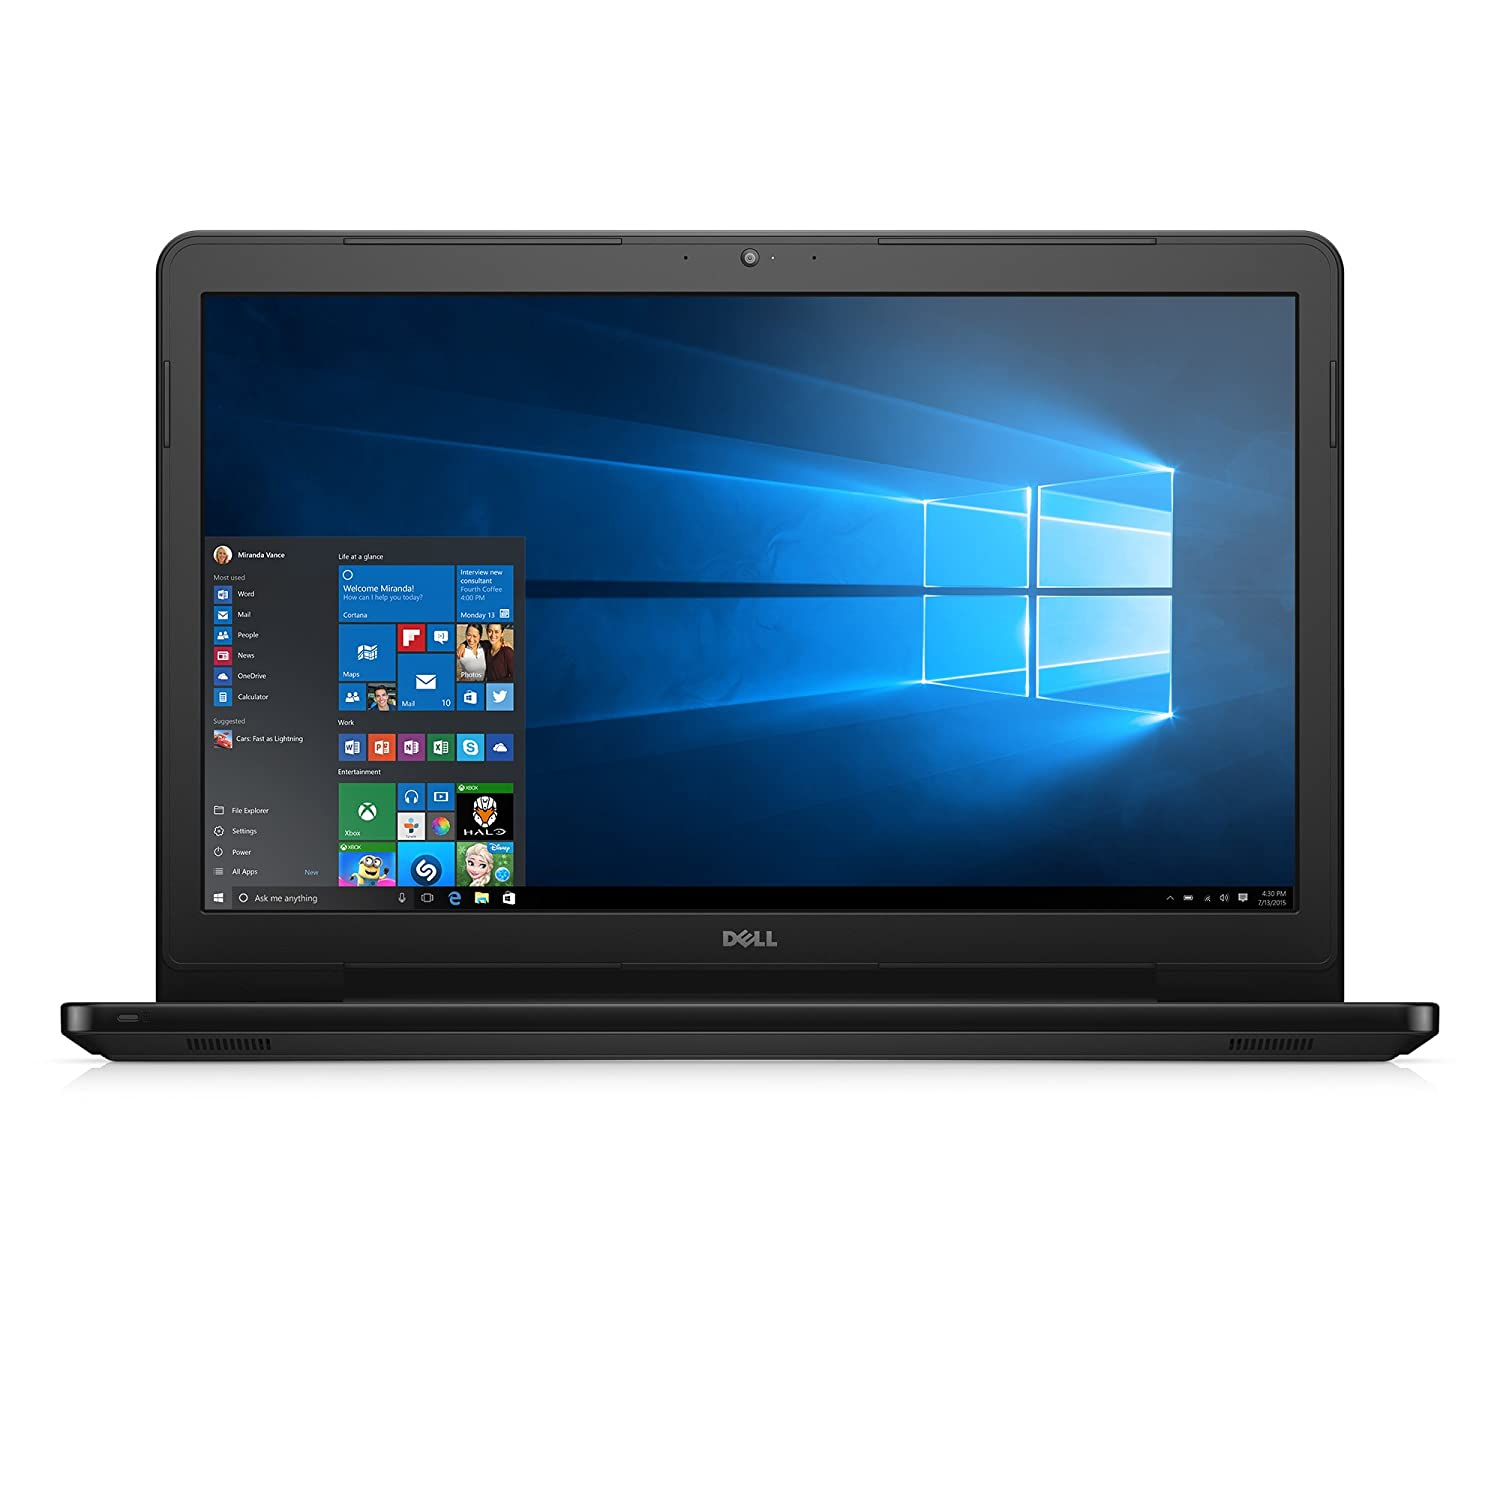 Amazon Dell Inspiron i5755 2858BLK 17 3 Inch Laptop AMD A8 8 GB RAM 1 TB HDD Black puters & Accessories